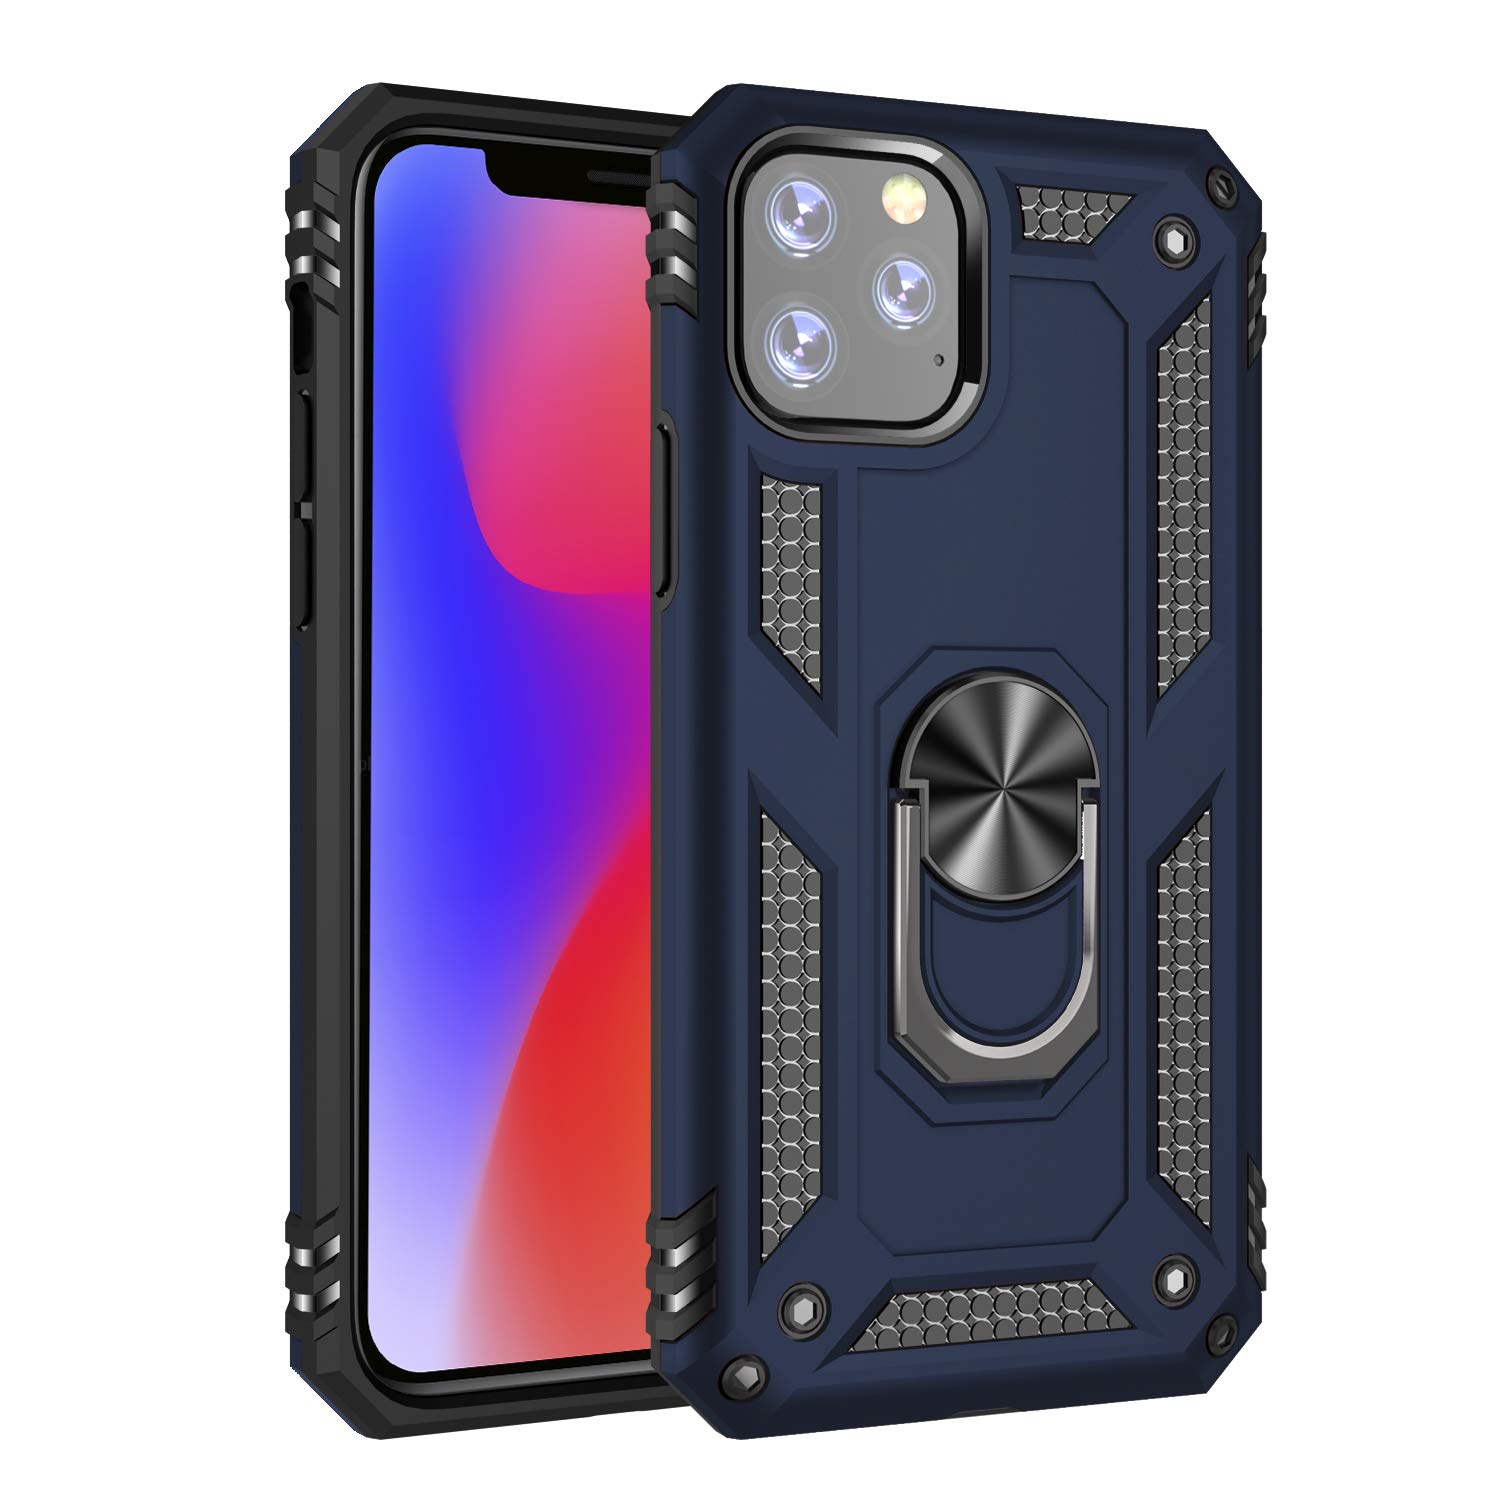 for iPhone 11 5.8|iPhone 11 6.1 Phone Shell Frame Shockproof Durable TPU Soft 360 Degree Ring Bracket Base Magnetic Cover (iPhone 11 5.8, Blue) by hongmeng